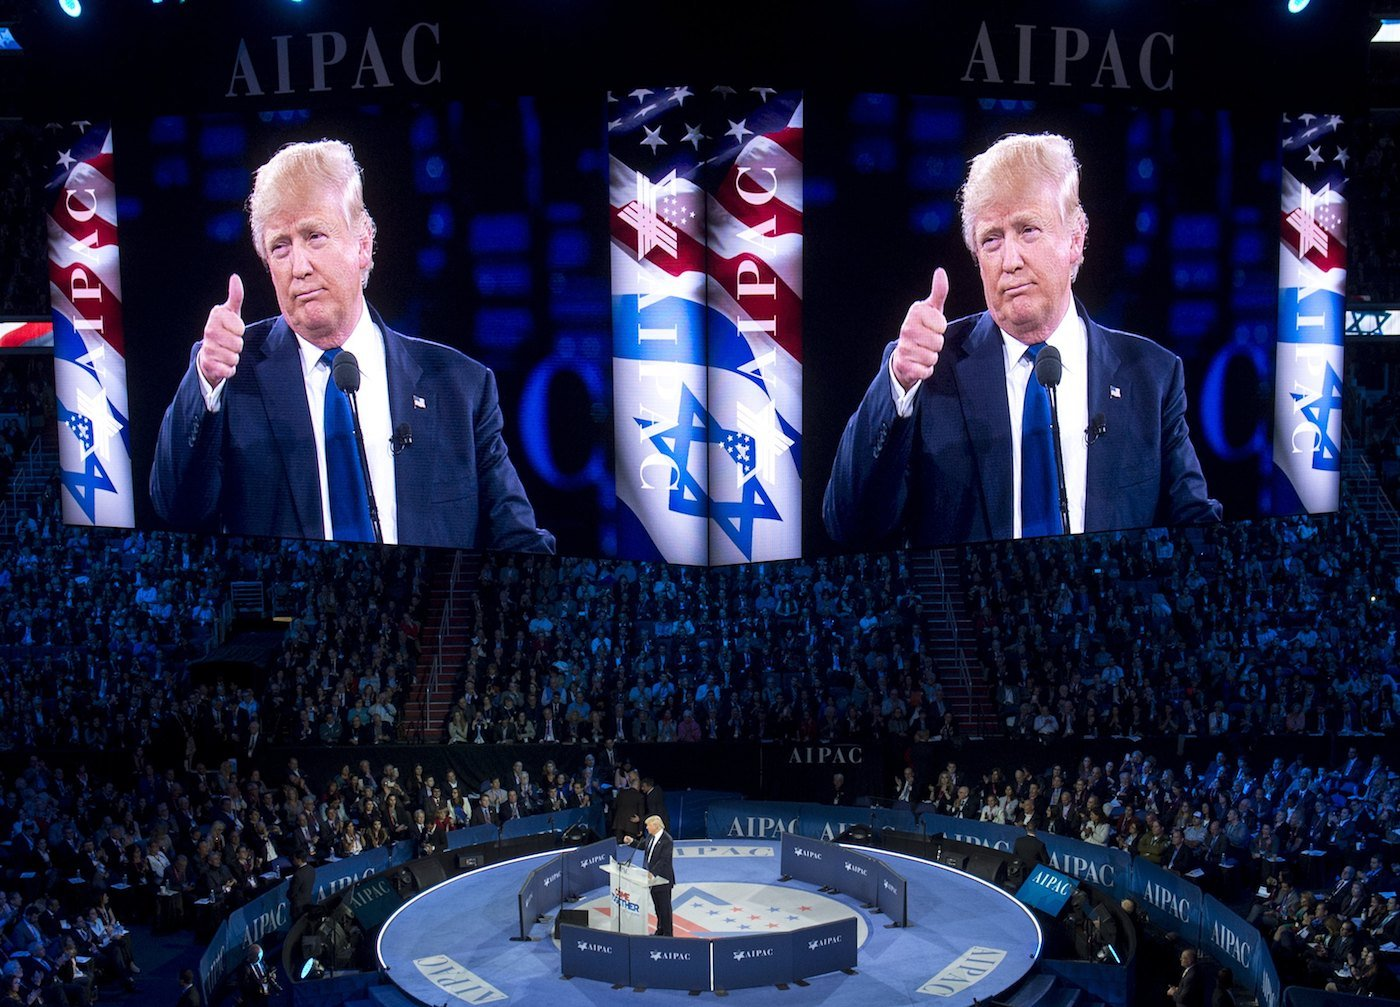 Donald Trump received raucous applause during a speech at the 2016 AIPAC conference (AFP/File photo)